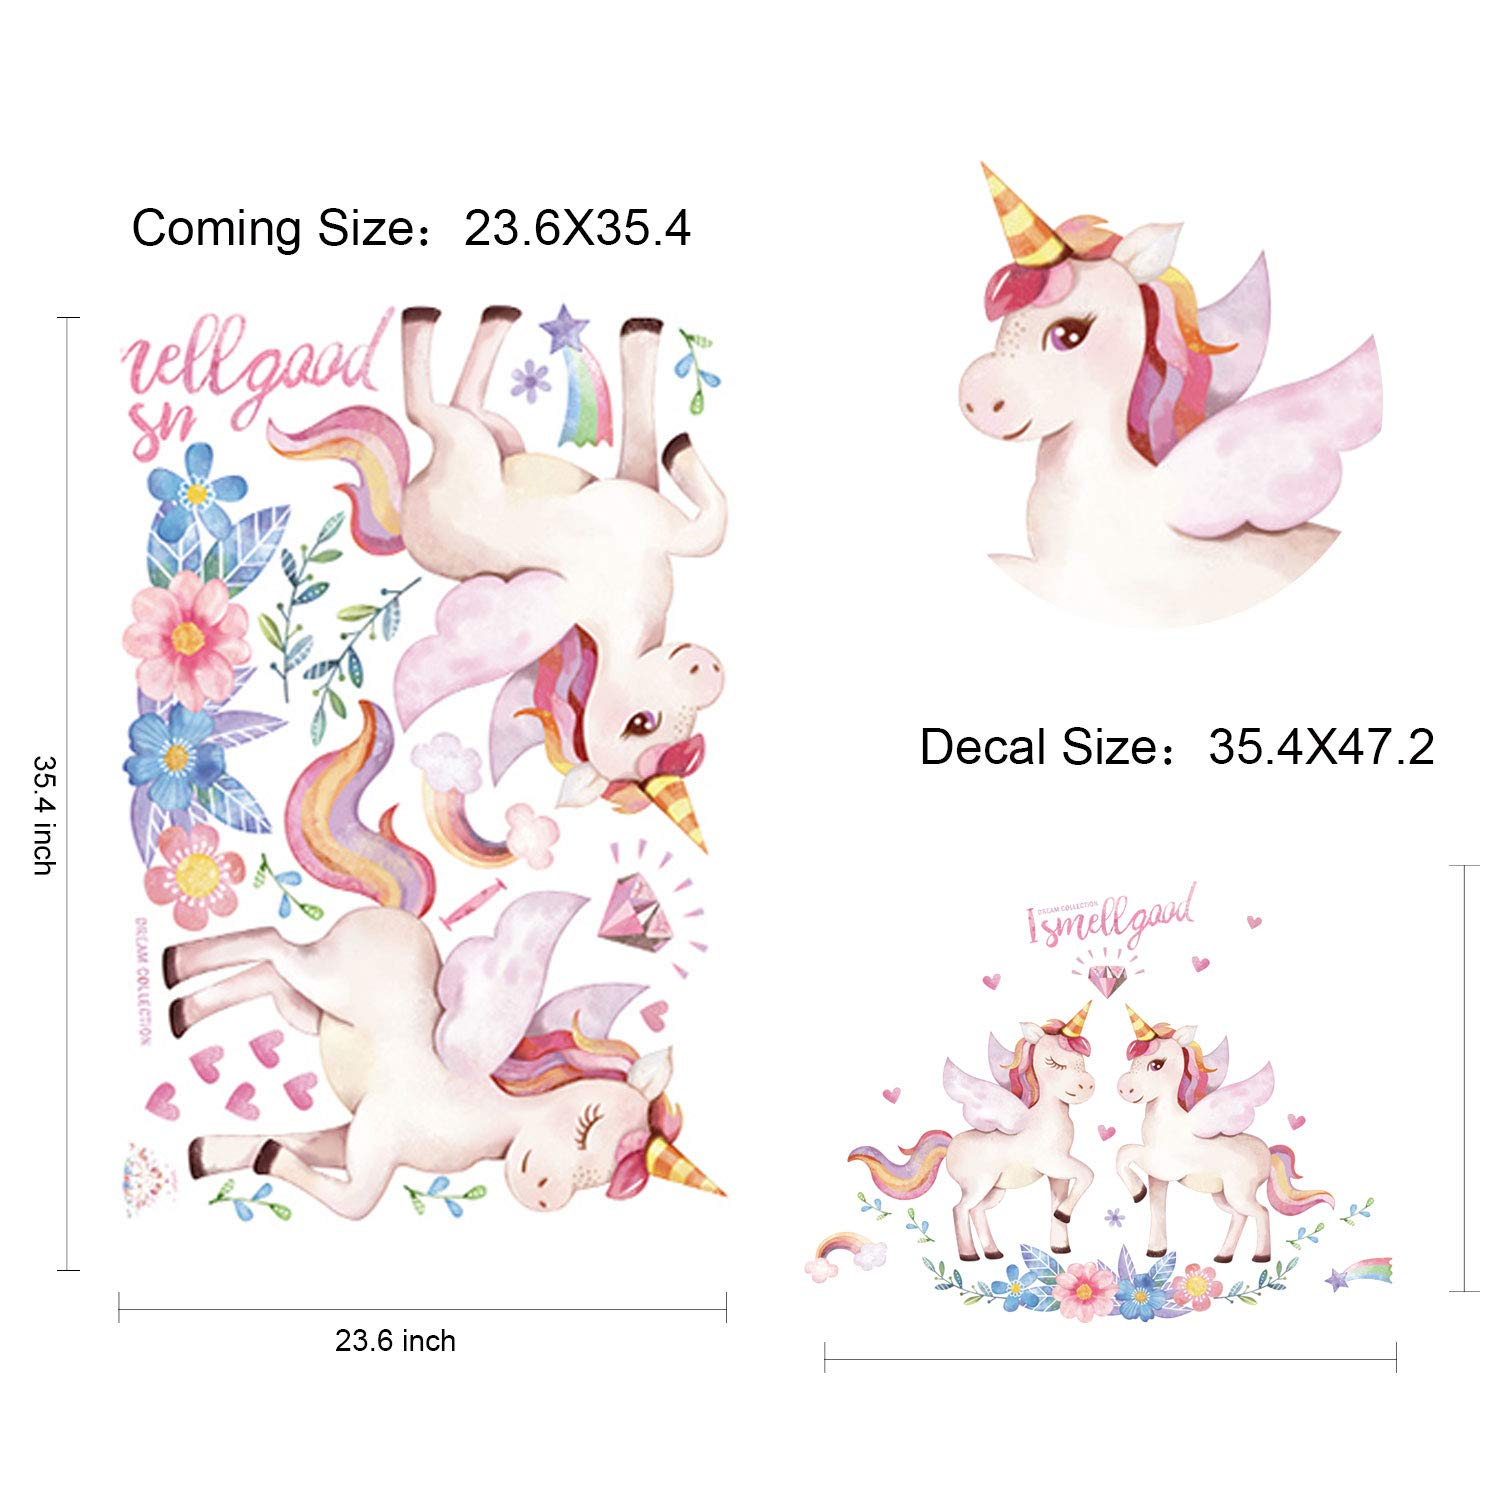 SUPPINNER Rainbow Horse Pink Unicorn Sticker Fairytale Wall Decals for Girls Bedroom Home Decor Decorations Unicorn Wall Decal Unicorn-2